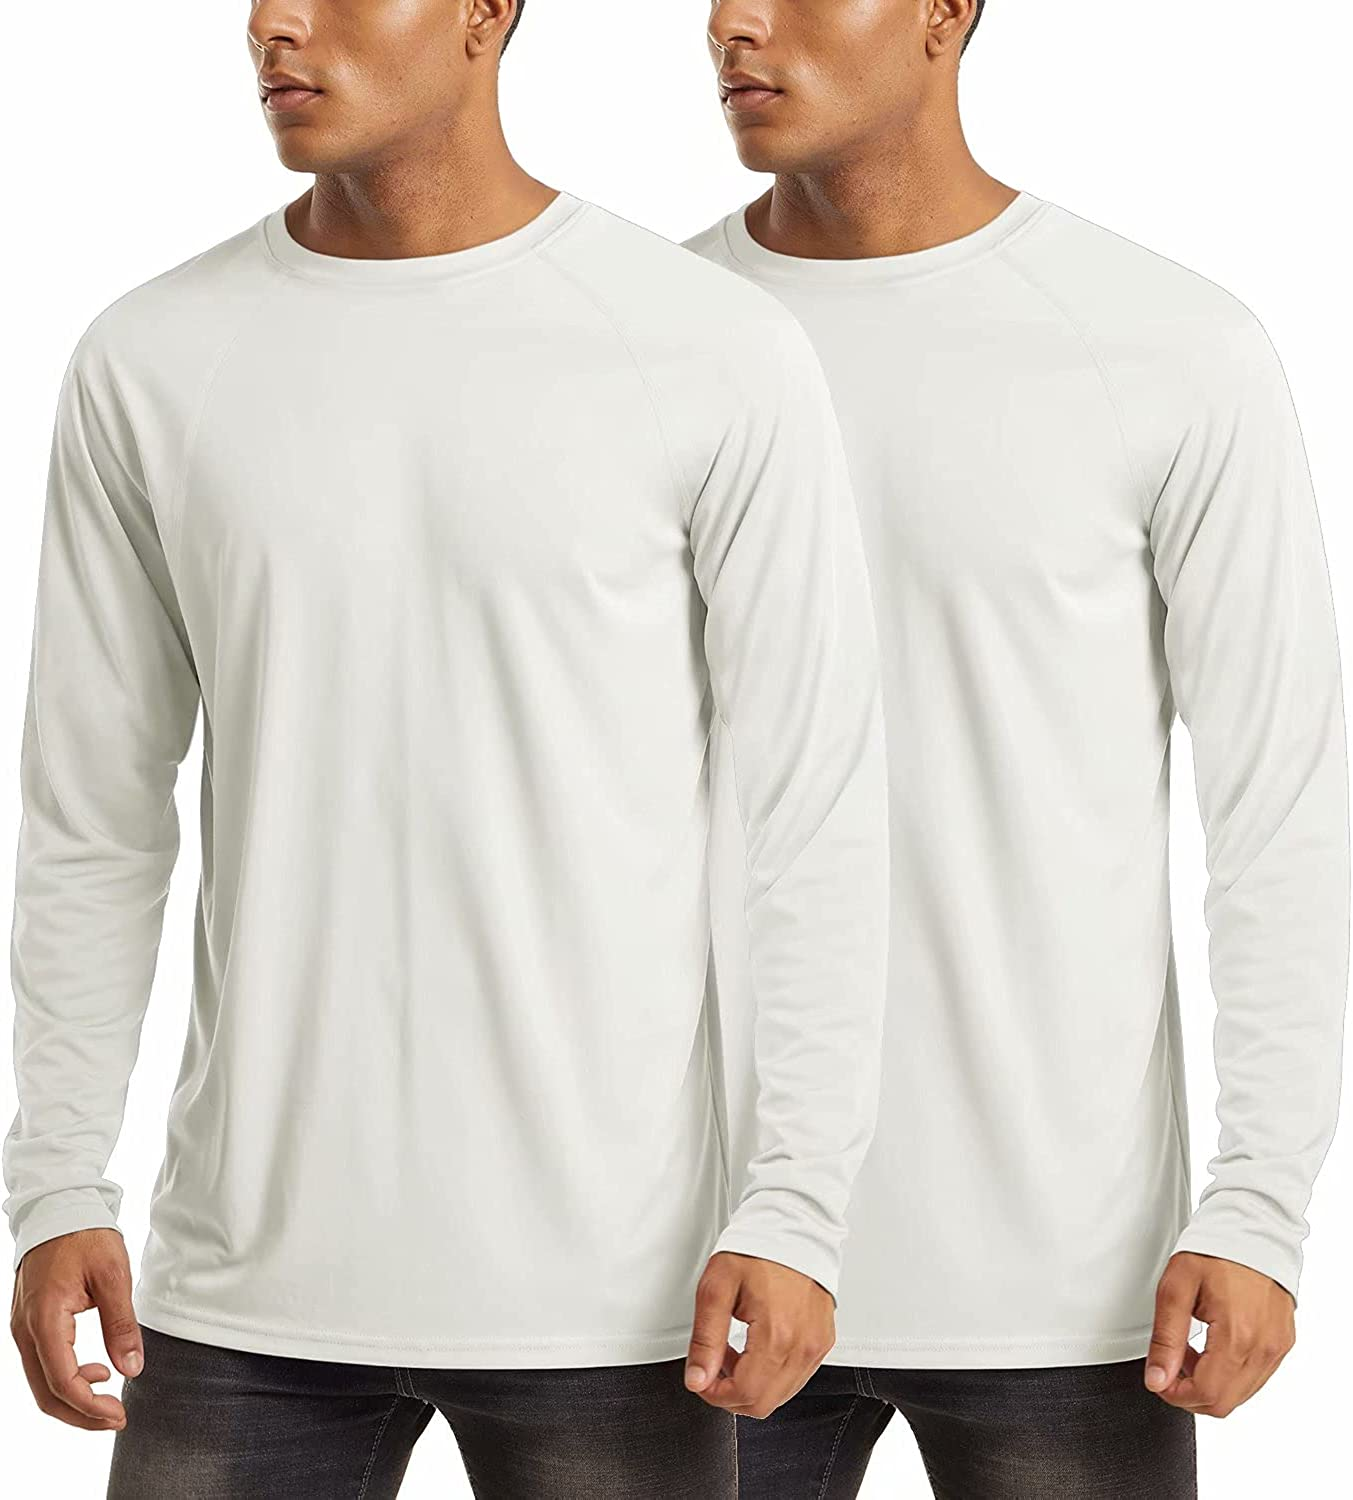 MAGCOMSEN Men's Sun Protection T-Shirt UPF UV 1 year warranty 50+ Sleeve Large-scale sale Long Mo